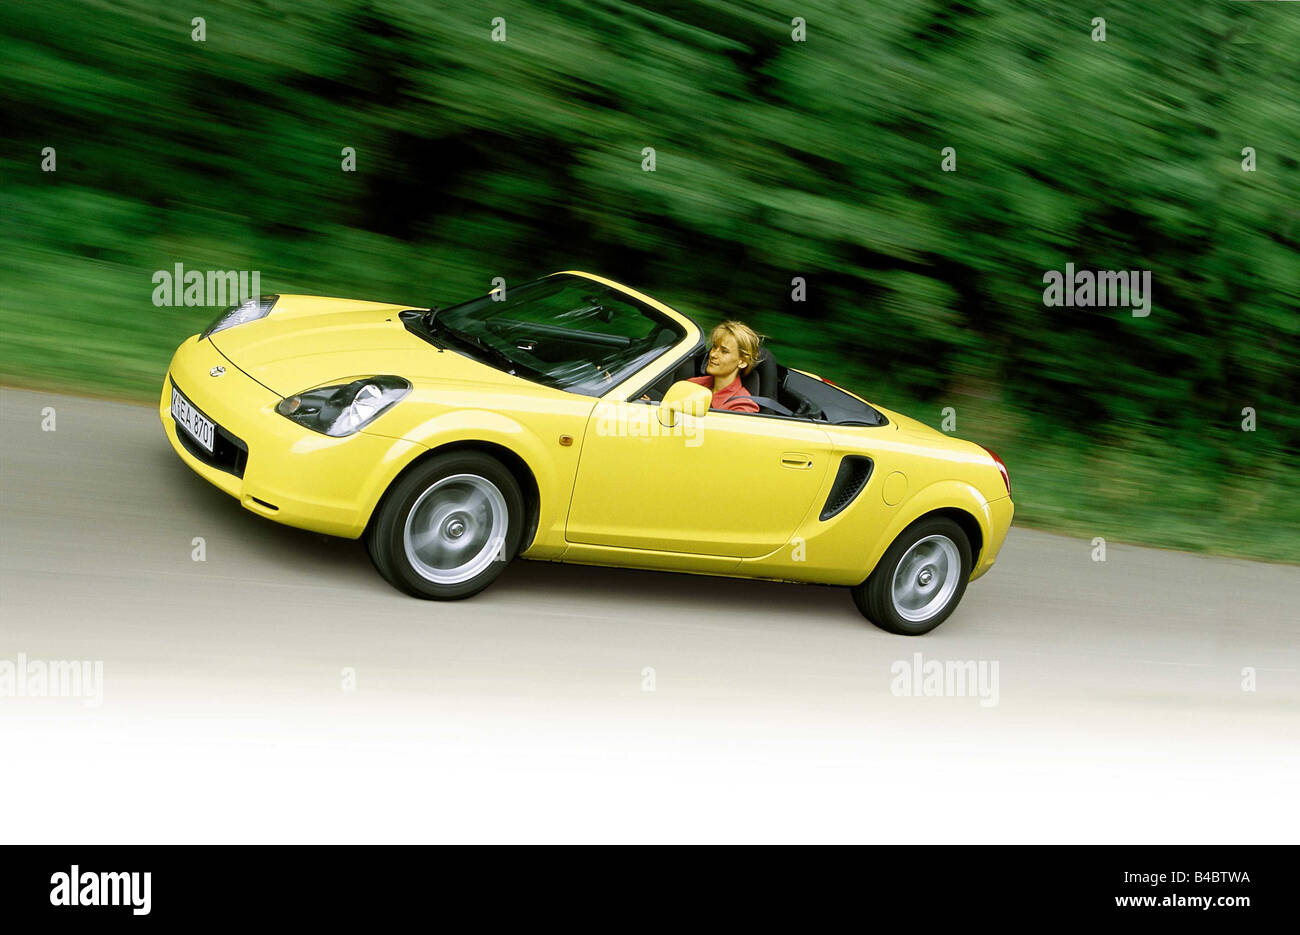 hight resolution of car toyota mr2 convertible model year 2000 yellow driving